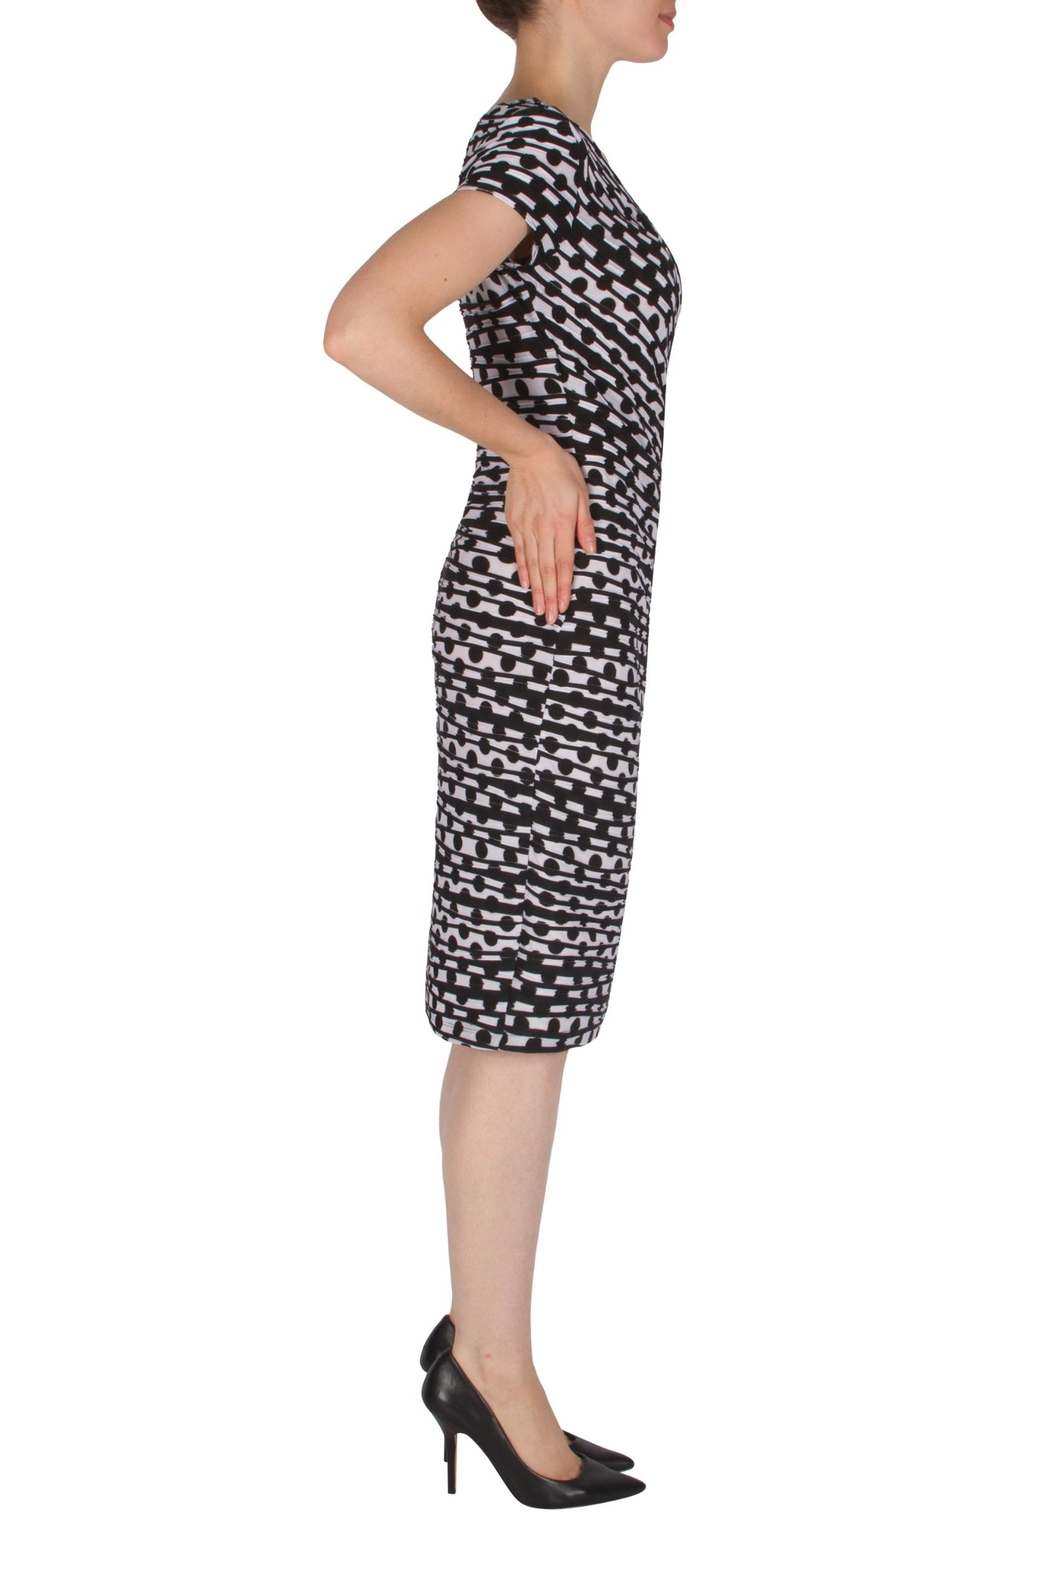 Joseph Ribkoff Faux-Wrap Dress - Front Full Image